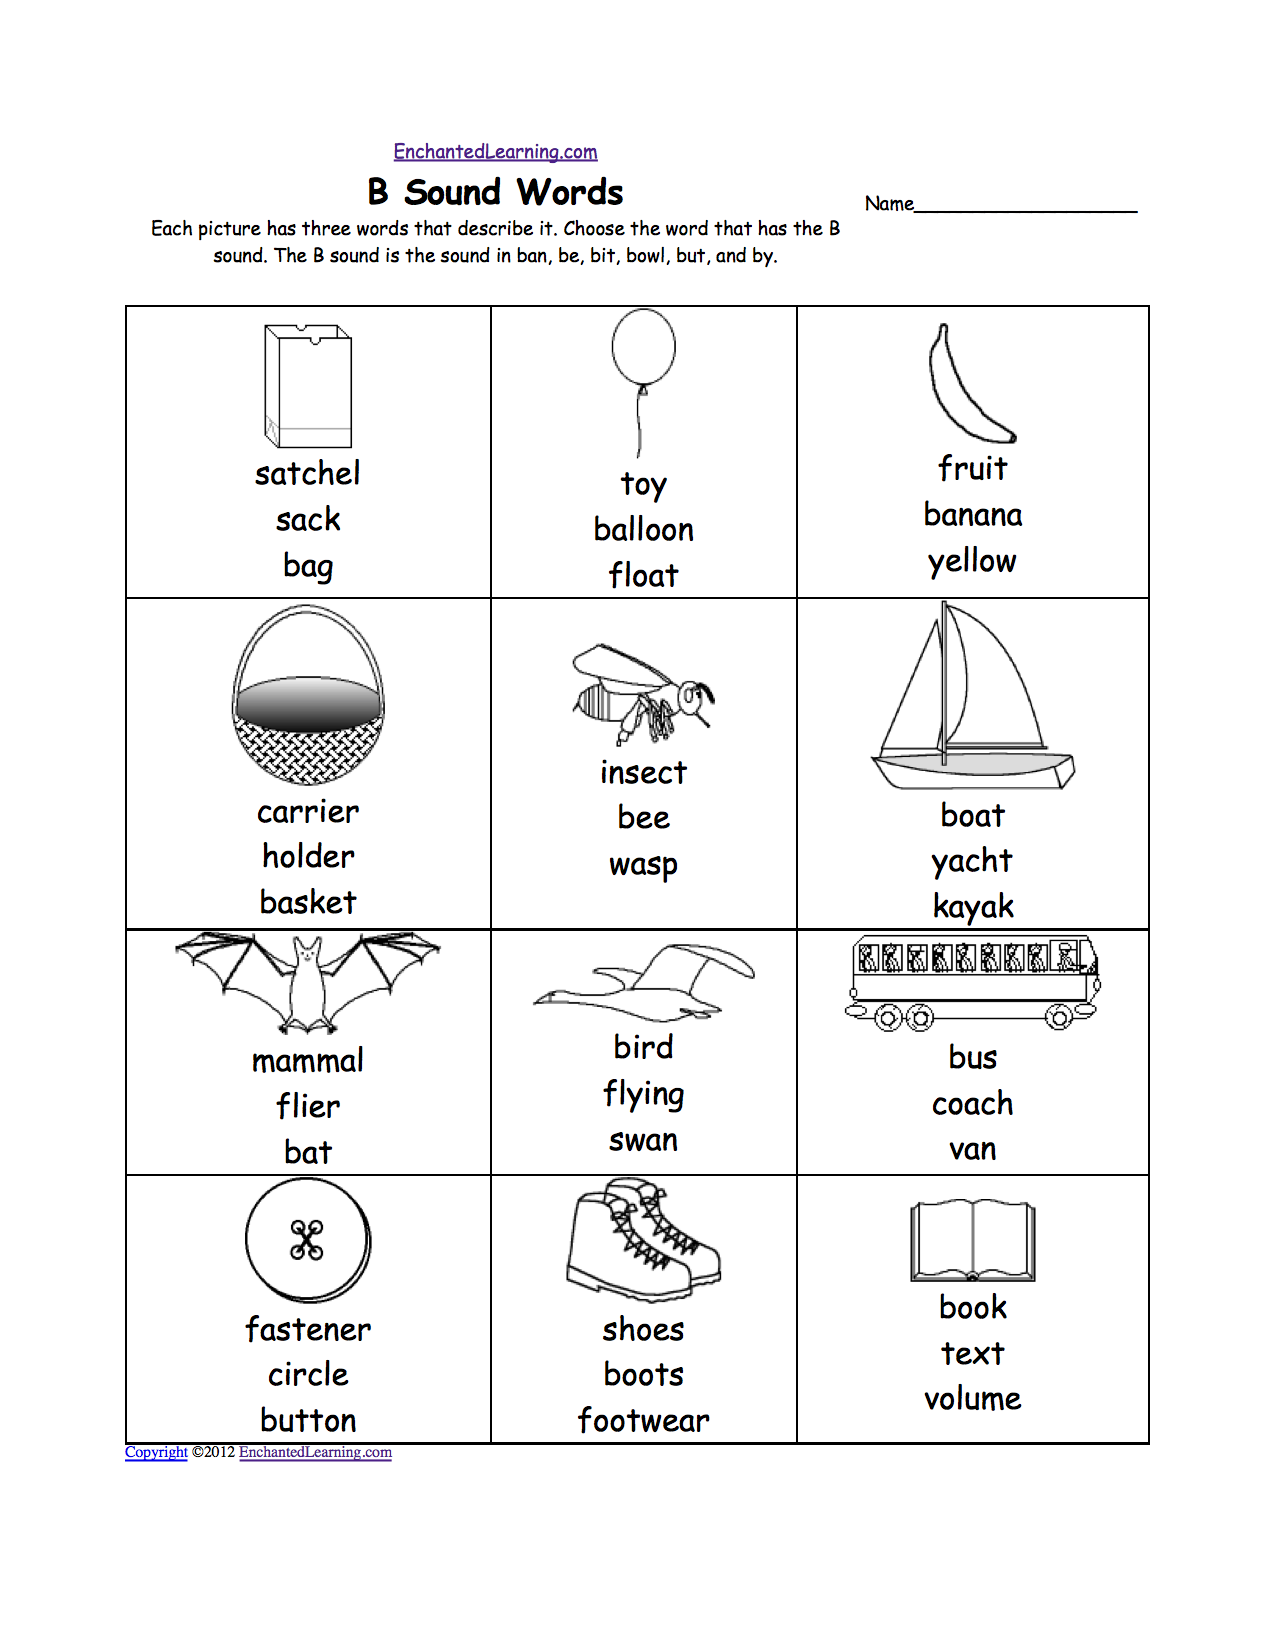 Aldiablosus  Gorgeous Phonics Worksheets Multiple Choice Worksheets To Print  With Inspiring Quotbquot Sound Phonics Worksheet Multiple Choice Each Picture Has Three Words That Describe It Choose The Word That Has A Quotbquot Sound The Quotbquot Sound Is The Sound  With Astonishing Latitude And Longitude Worksheets High School Also Math Worksheets For Elementary In Addition Printable Color Wheel Worksheet And Bible Activity Worksheets As Well As Simpson Scientific Method Worksheet Additionally Velocity Worksheets From Enchantedlearningcom With Aldiablosus  Inspiring Phonics Worksheets Multiple Choice Worksheets To Print  With Astonishing Quotbquot Sound Phonics Worksheet Multiple Choice Each Picture Has Three Words That Describe It Choose The Word That Has A Quotbquot Sound The Quotbquot Sound Is The Sound  And Gorgeous Latitude And Longitude Worksheets High School Also Math Worksheets For Elementary In Addition Printable Color Wheel Worksheet From Enchantedlearningcom